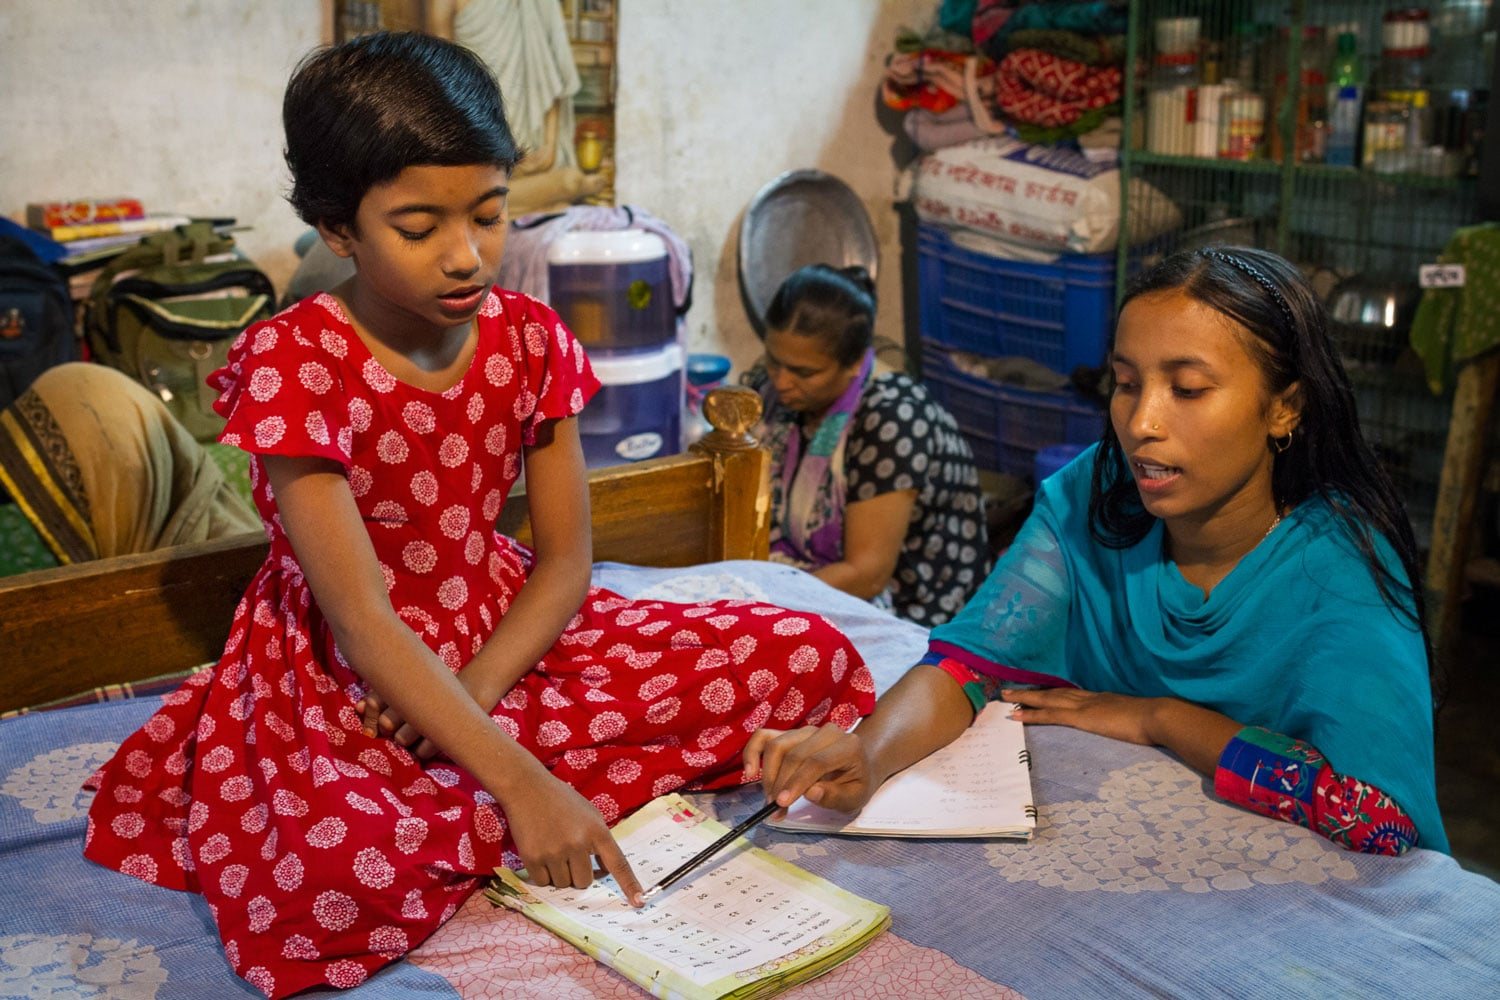 Shushmita's sister helps her with her schoolwork. Spending just three hours a day in school makes it difficult to provide children with the kind of quality education they need for a better future. As a result, most students in Bangladesh need to attend some sort of tuition program outside of school — an added cost that can be difficult for poor families to bear.